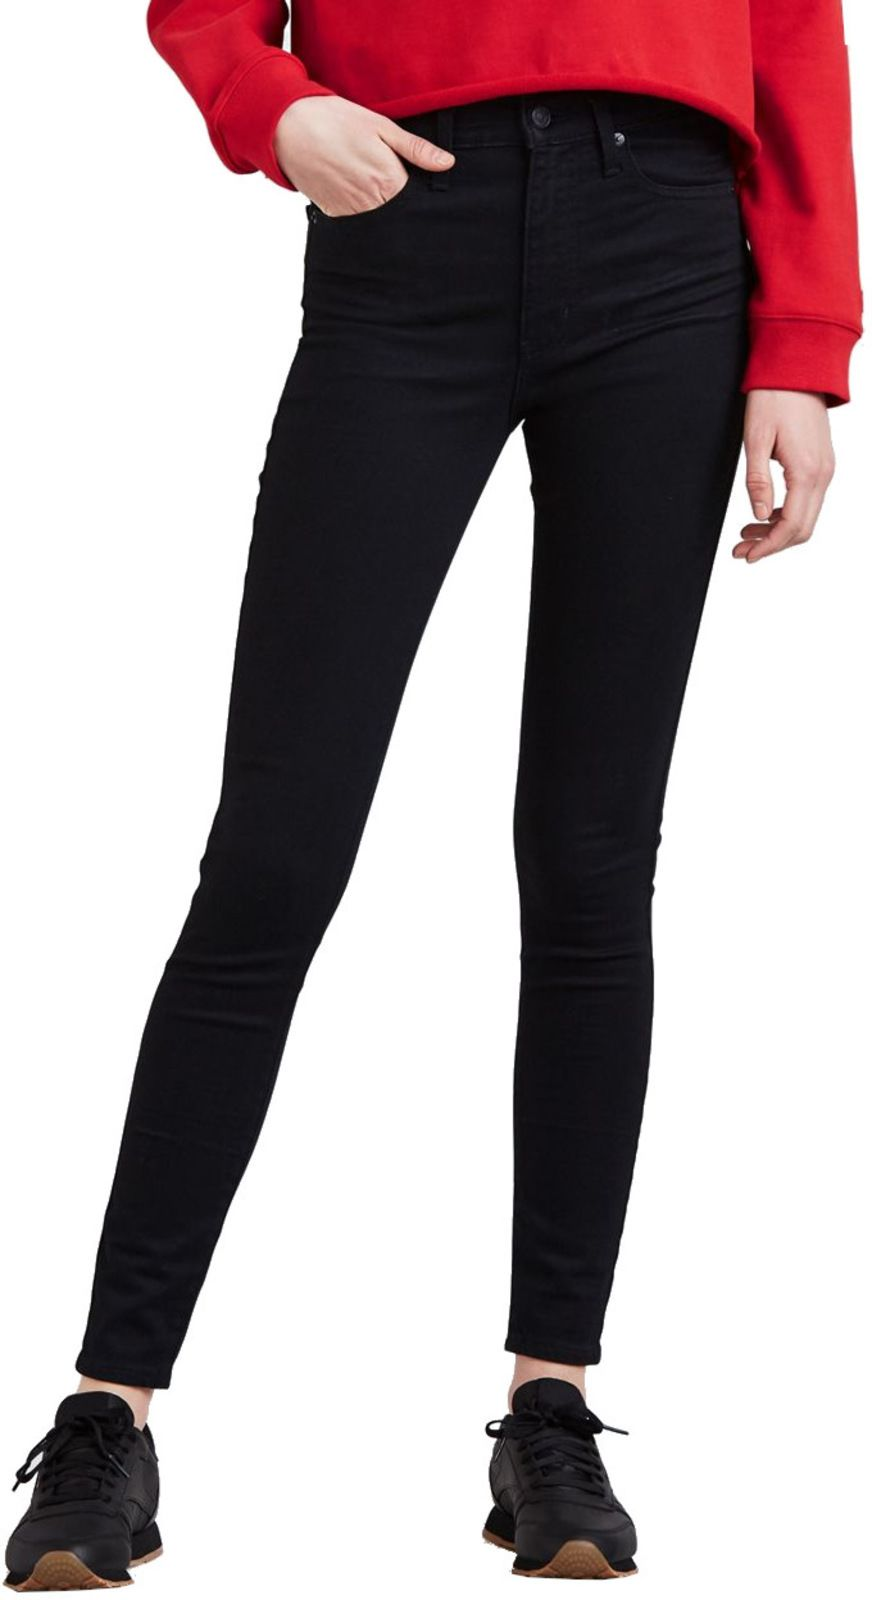 Levi's Mile High Super Skinny Denim Jeans Black